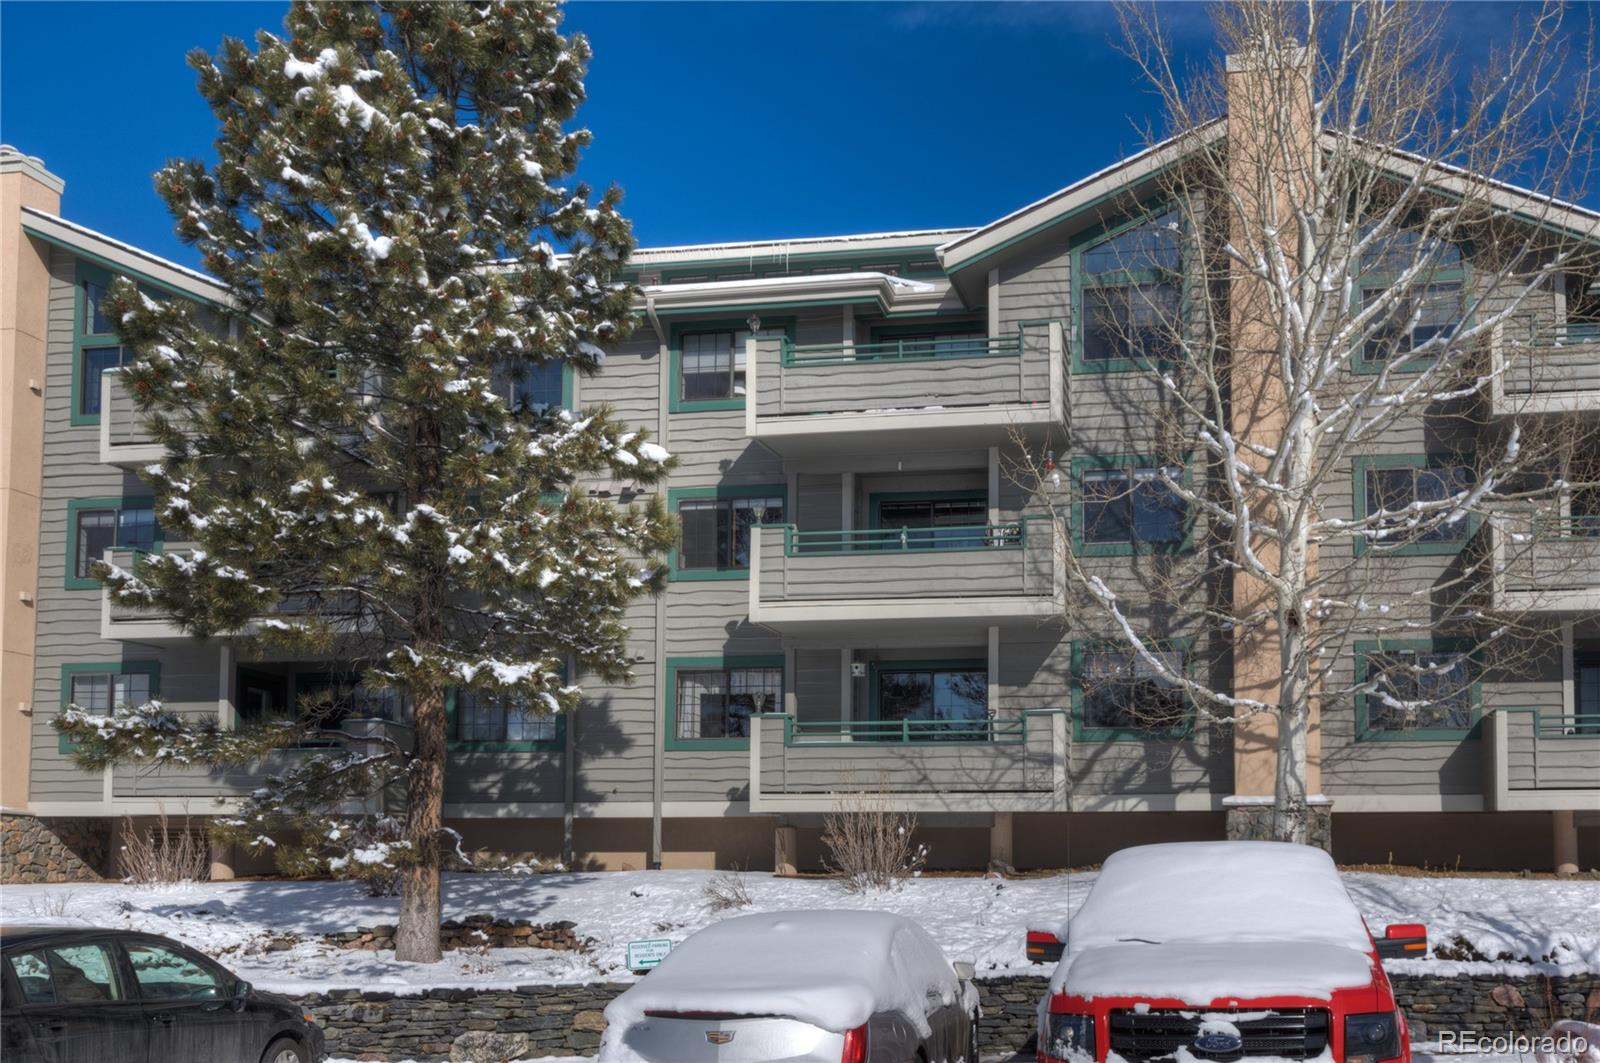 MLS# 8781176 - 31719 Rocky Village Drive #208, Evergreen, CO 80439